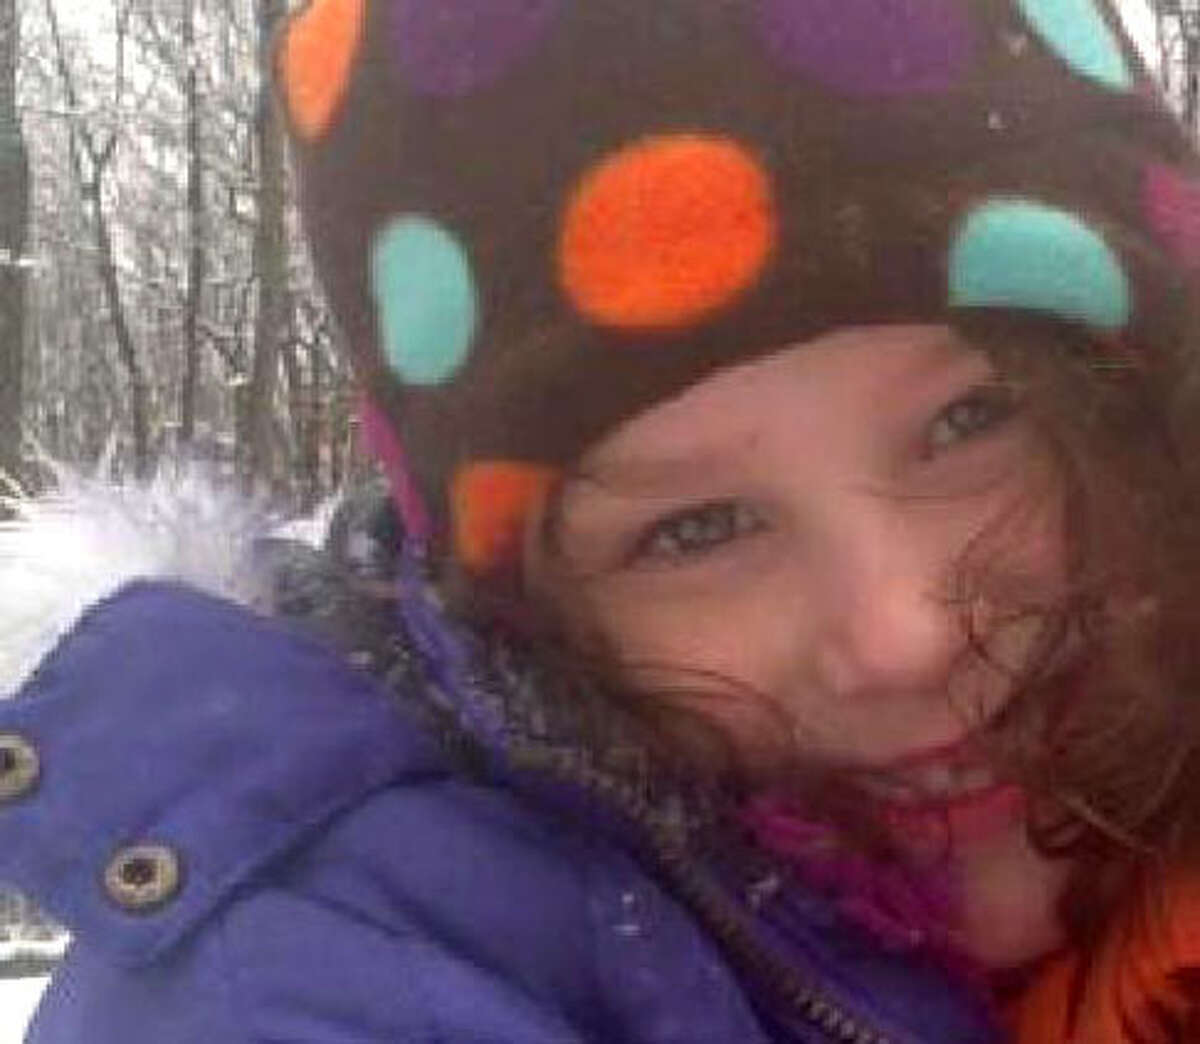 Charlotte Bacon died in the Sandy Hook Elementary School shooting in Newtown, Conn. on Friday, Dec. 14, 2012.